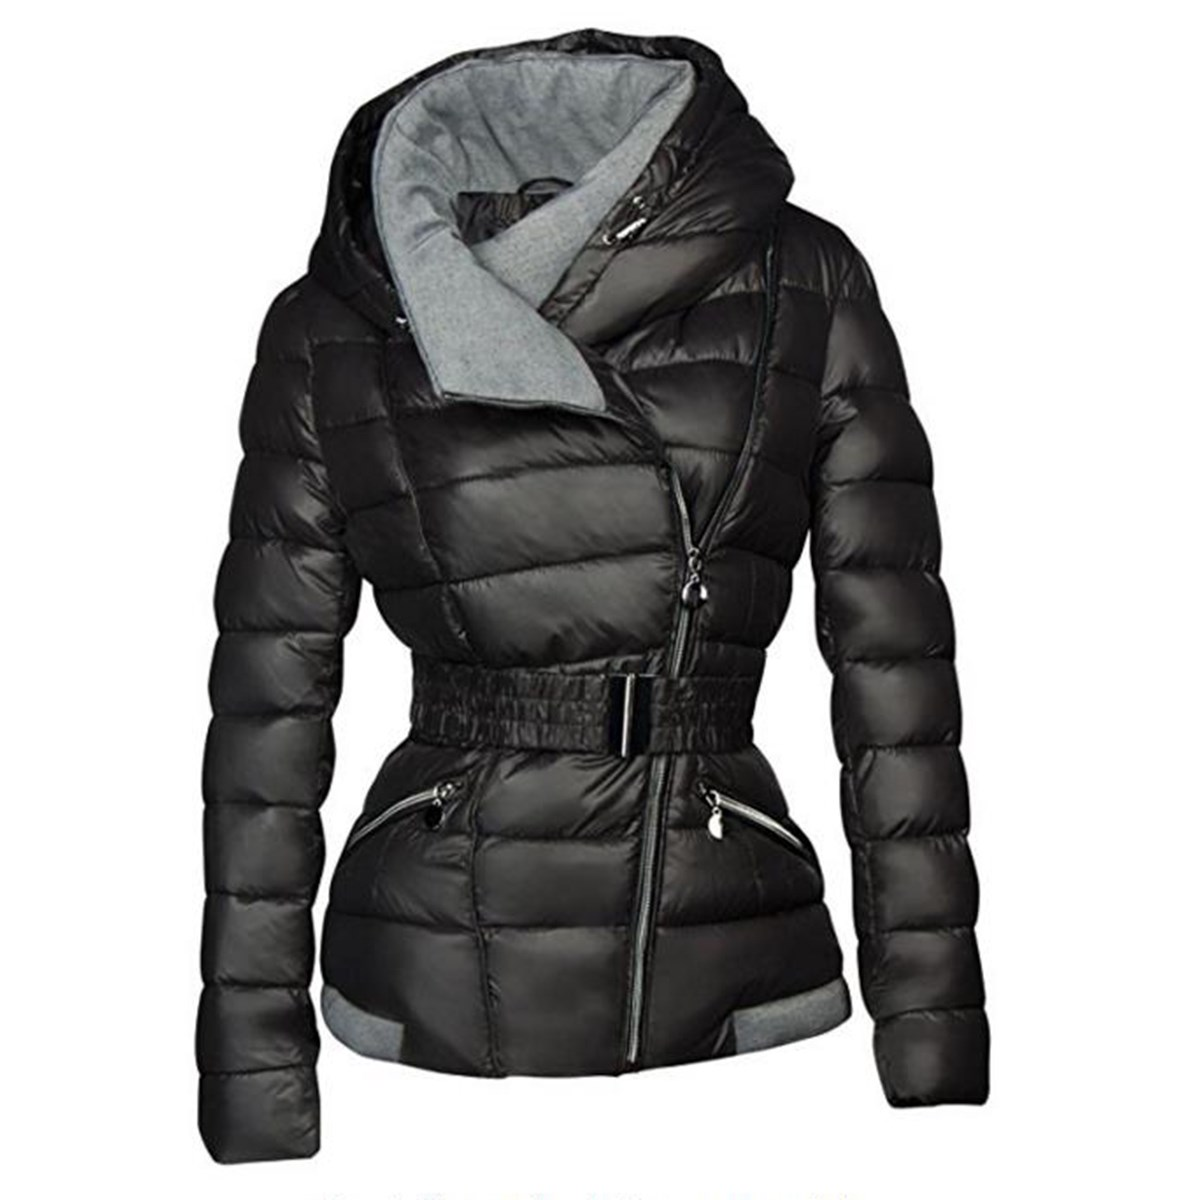 Winter black   parkas   Women Light Down Jacket Women Hooded Female Zipper Pockets belt plain Outwear Fashion Coat warm gril 2019